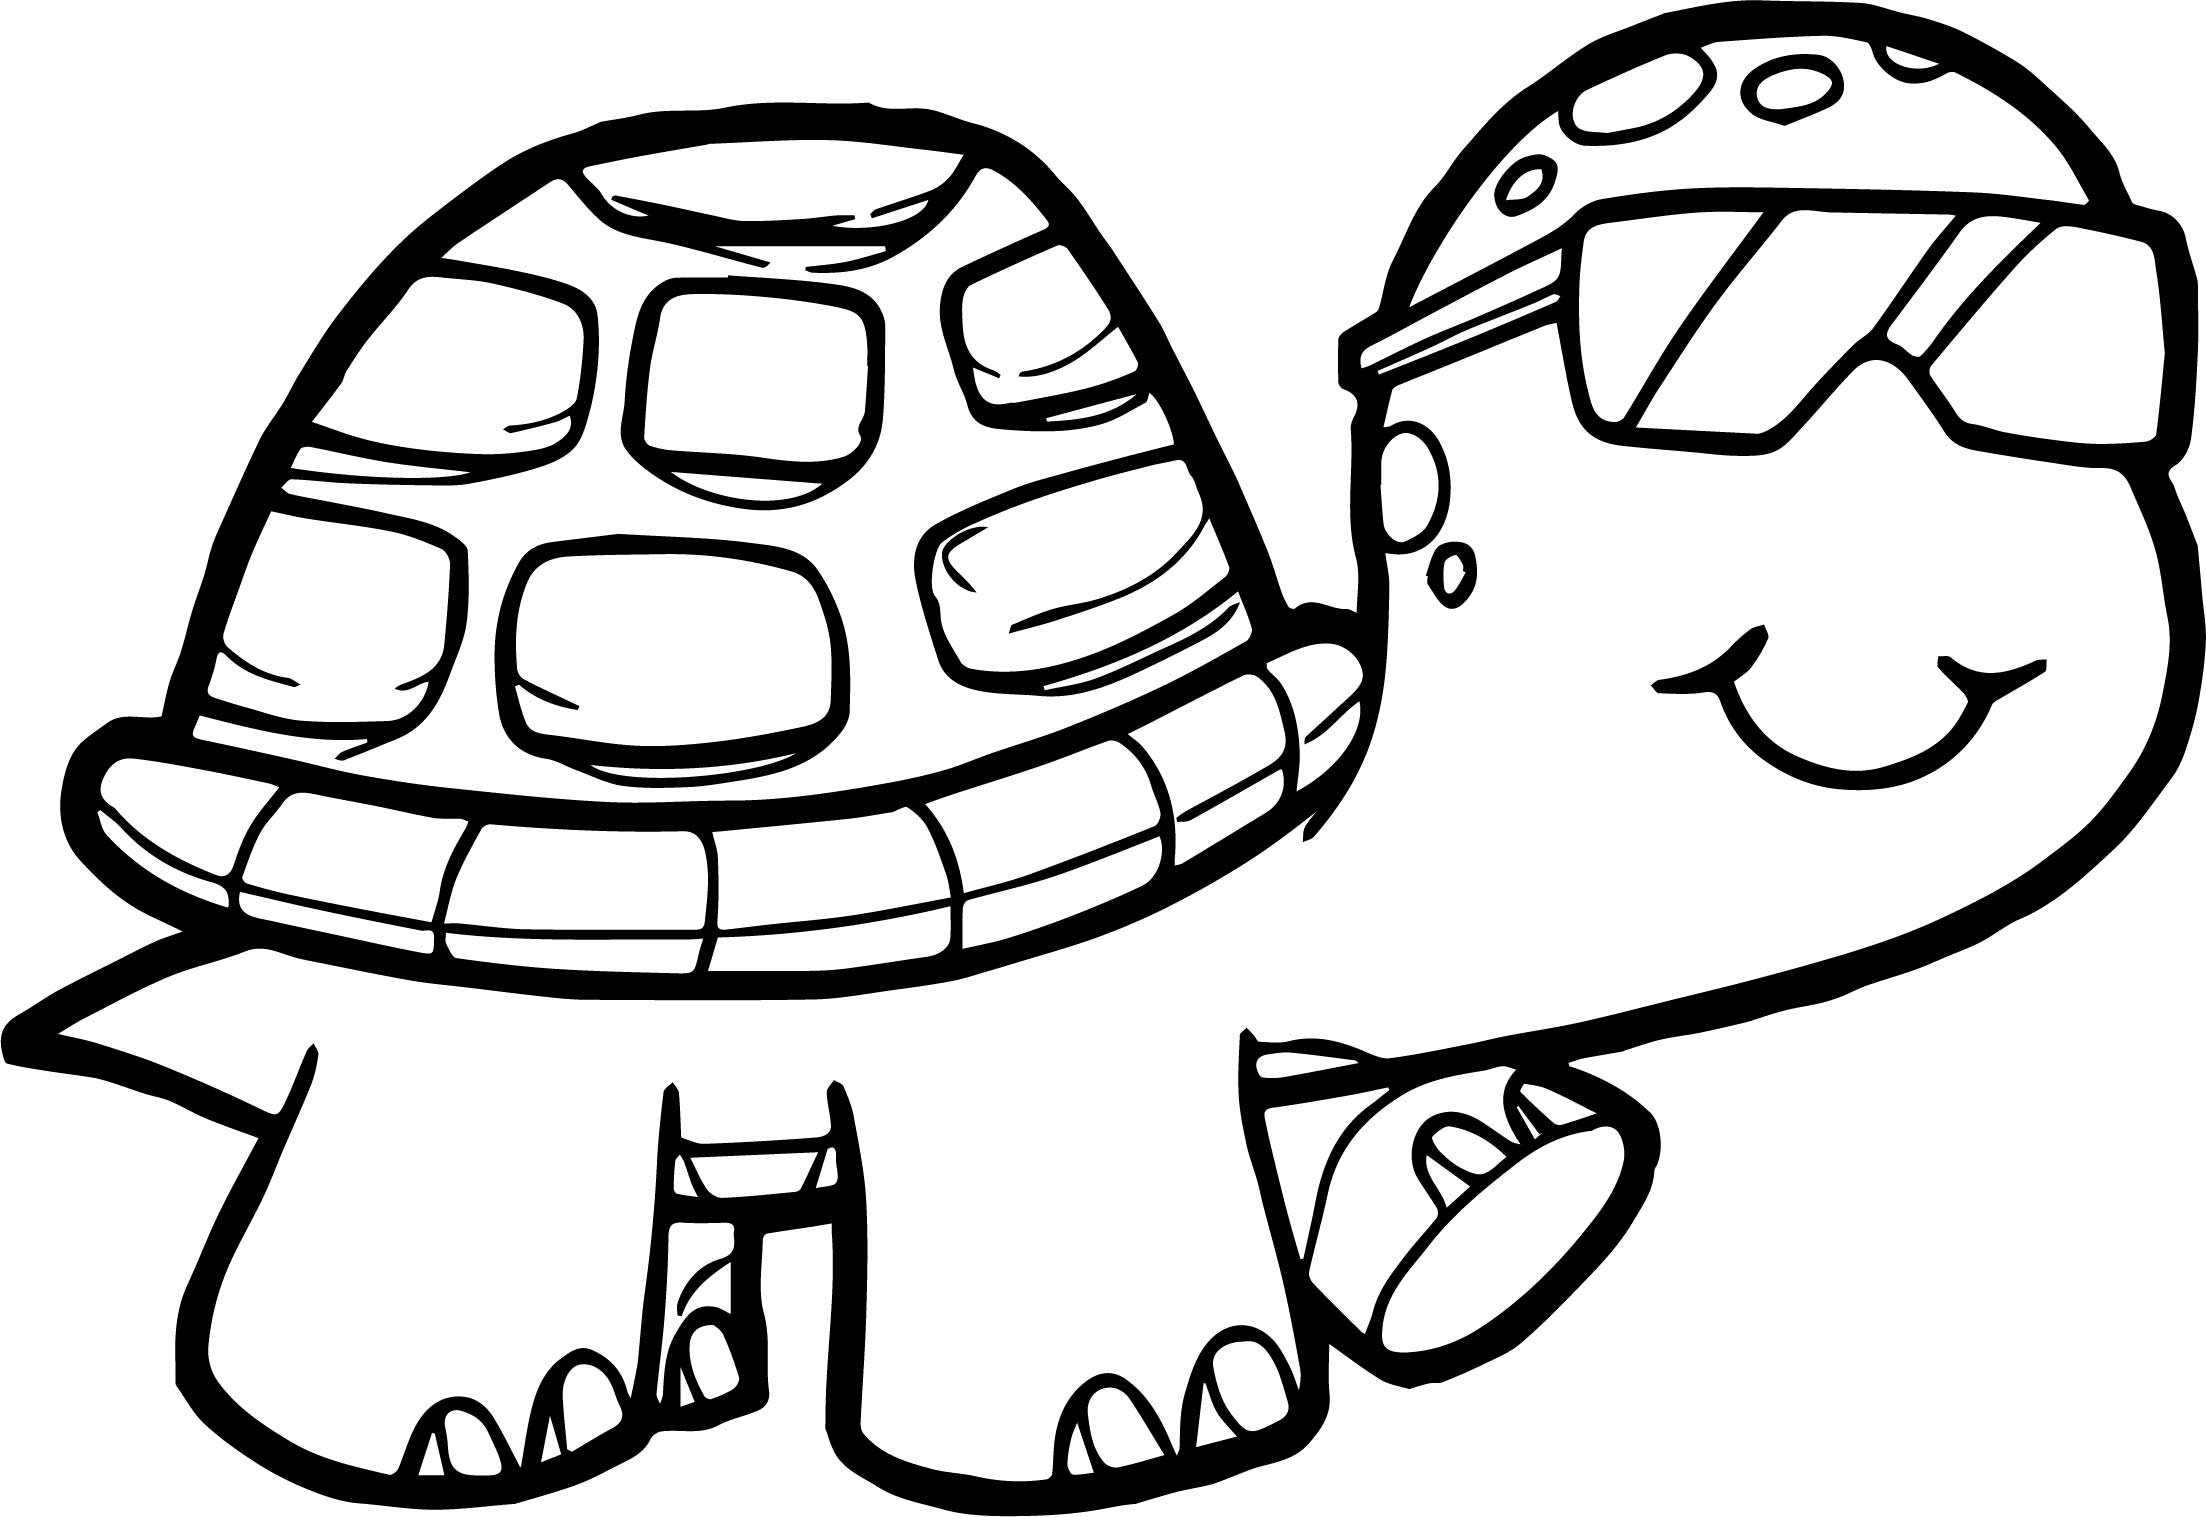 Marvelous 2206x1517 Coloring Pages Turtle In Tiny Draw Image Glasses Tortoise Page